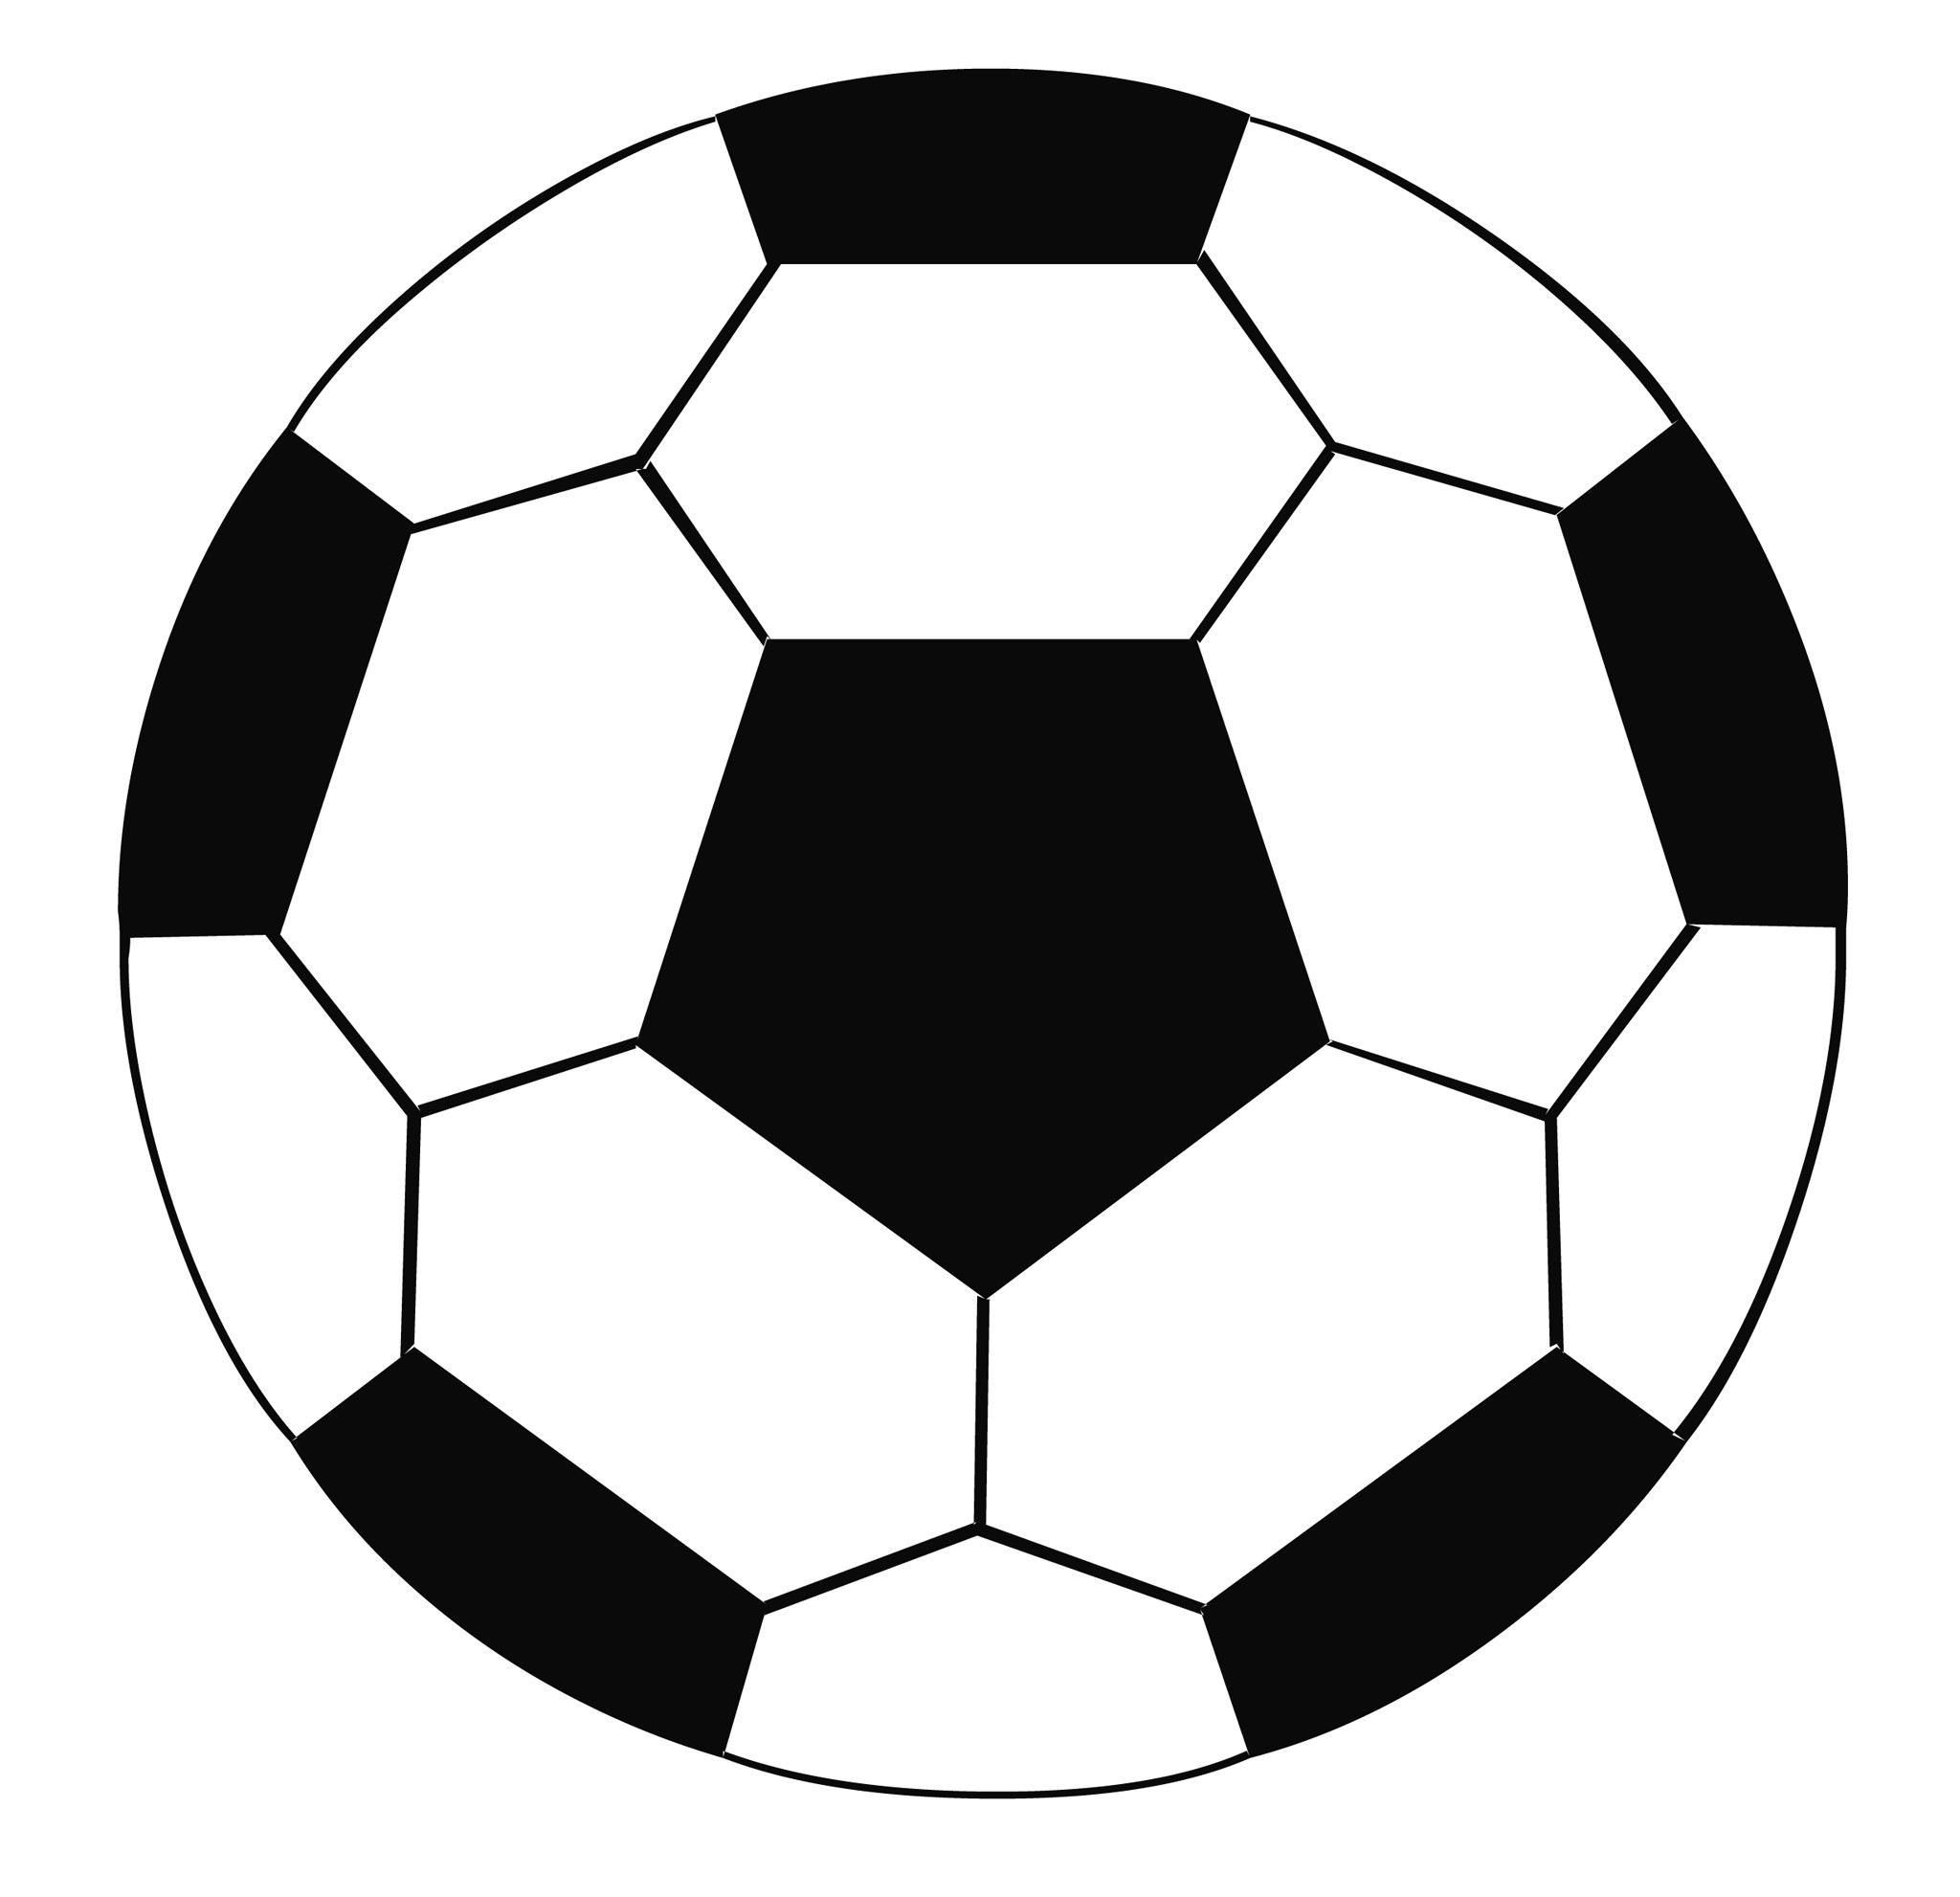 Free images of soccer. Ball clipart footy